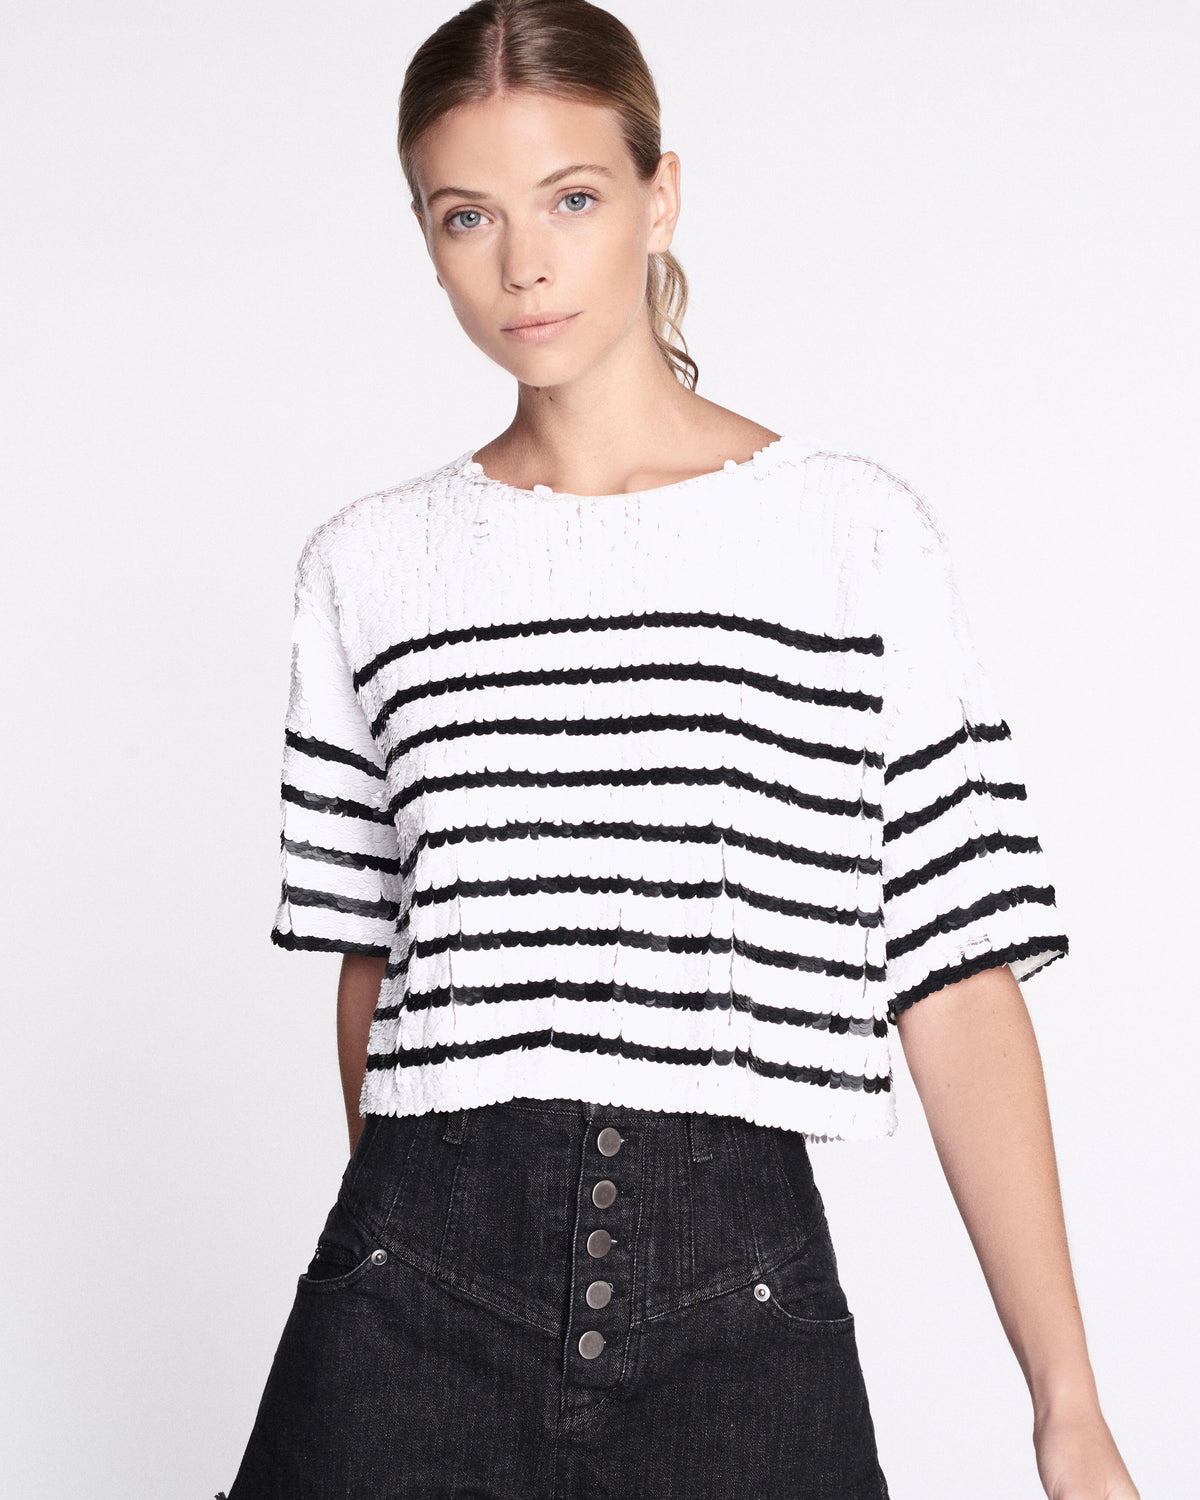 Deandra Sequin T-Shirt Top in White & Black